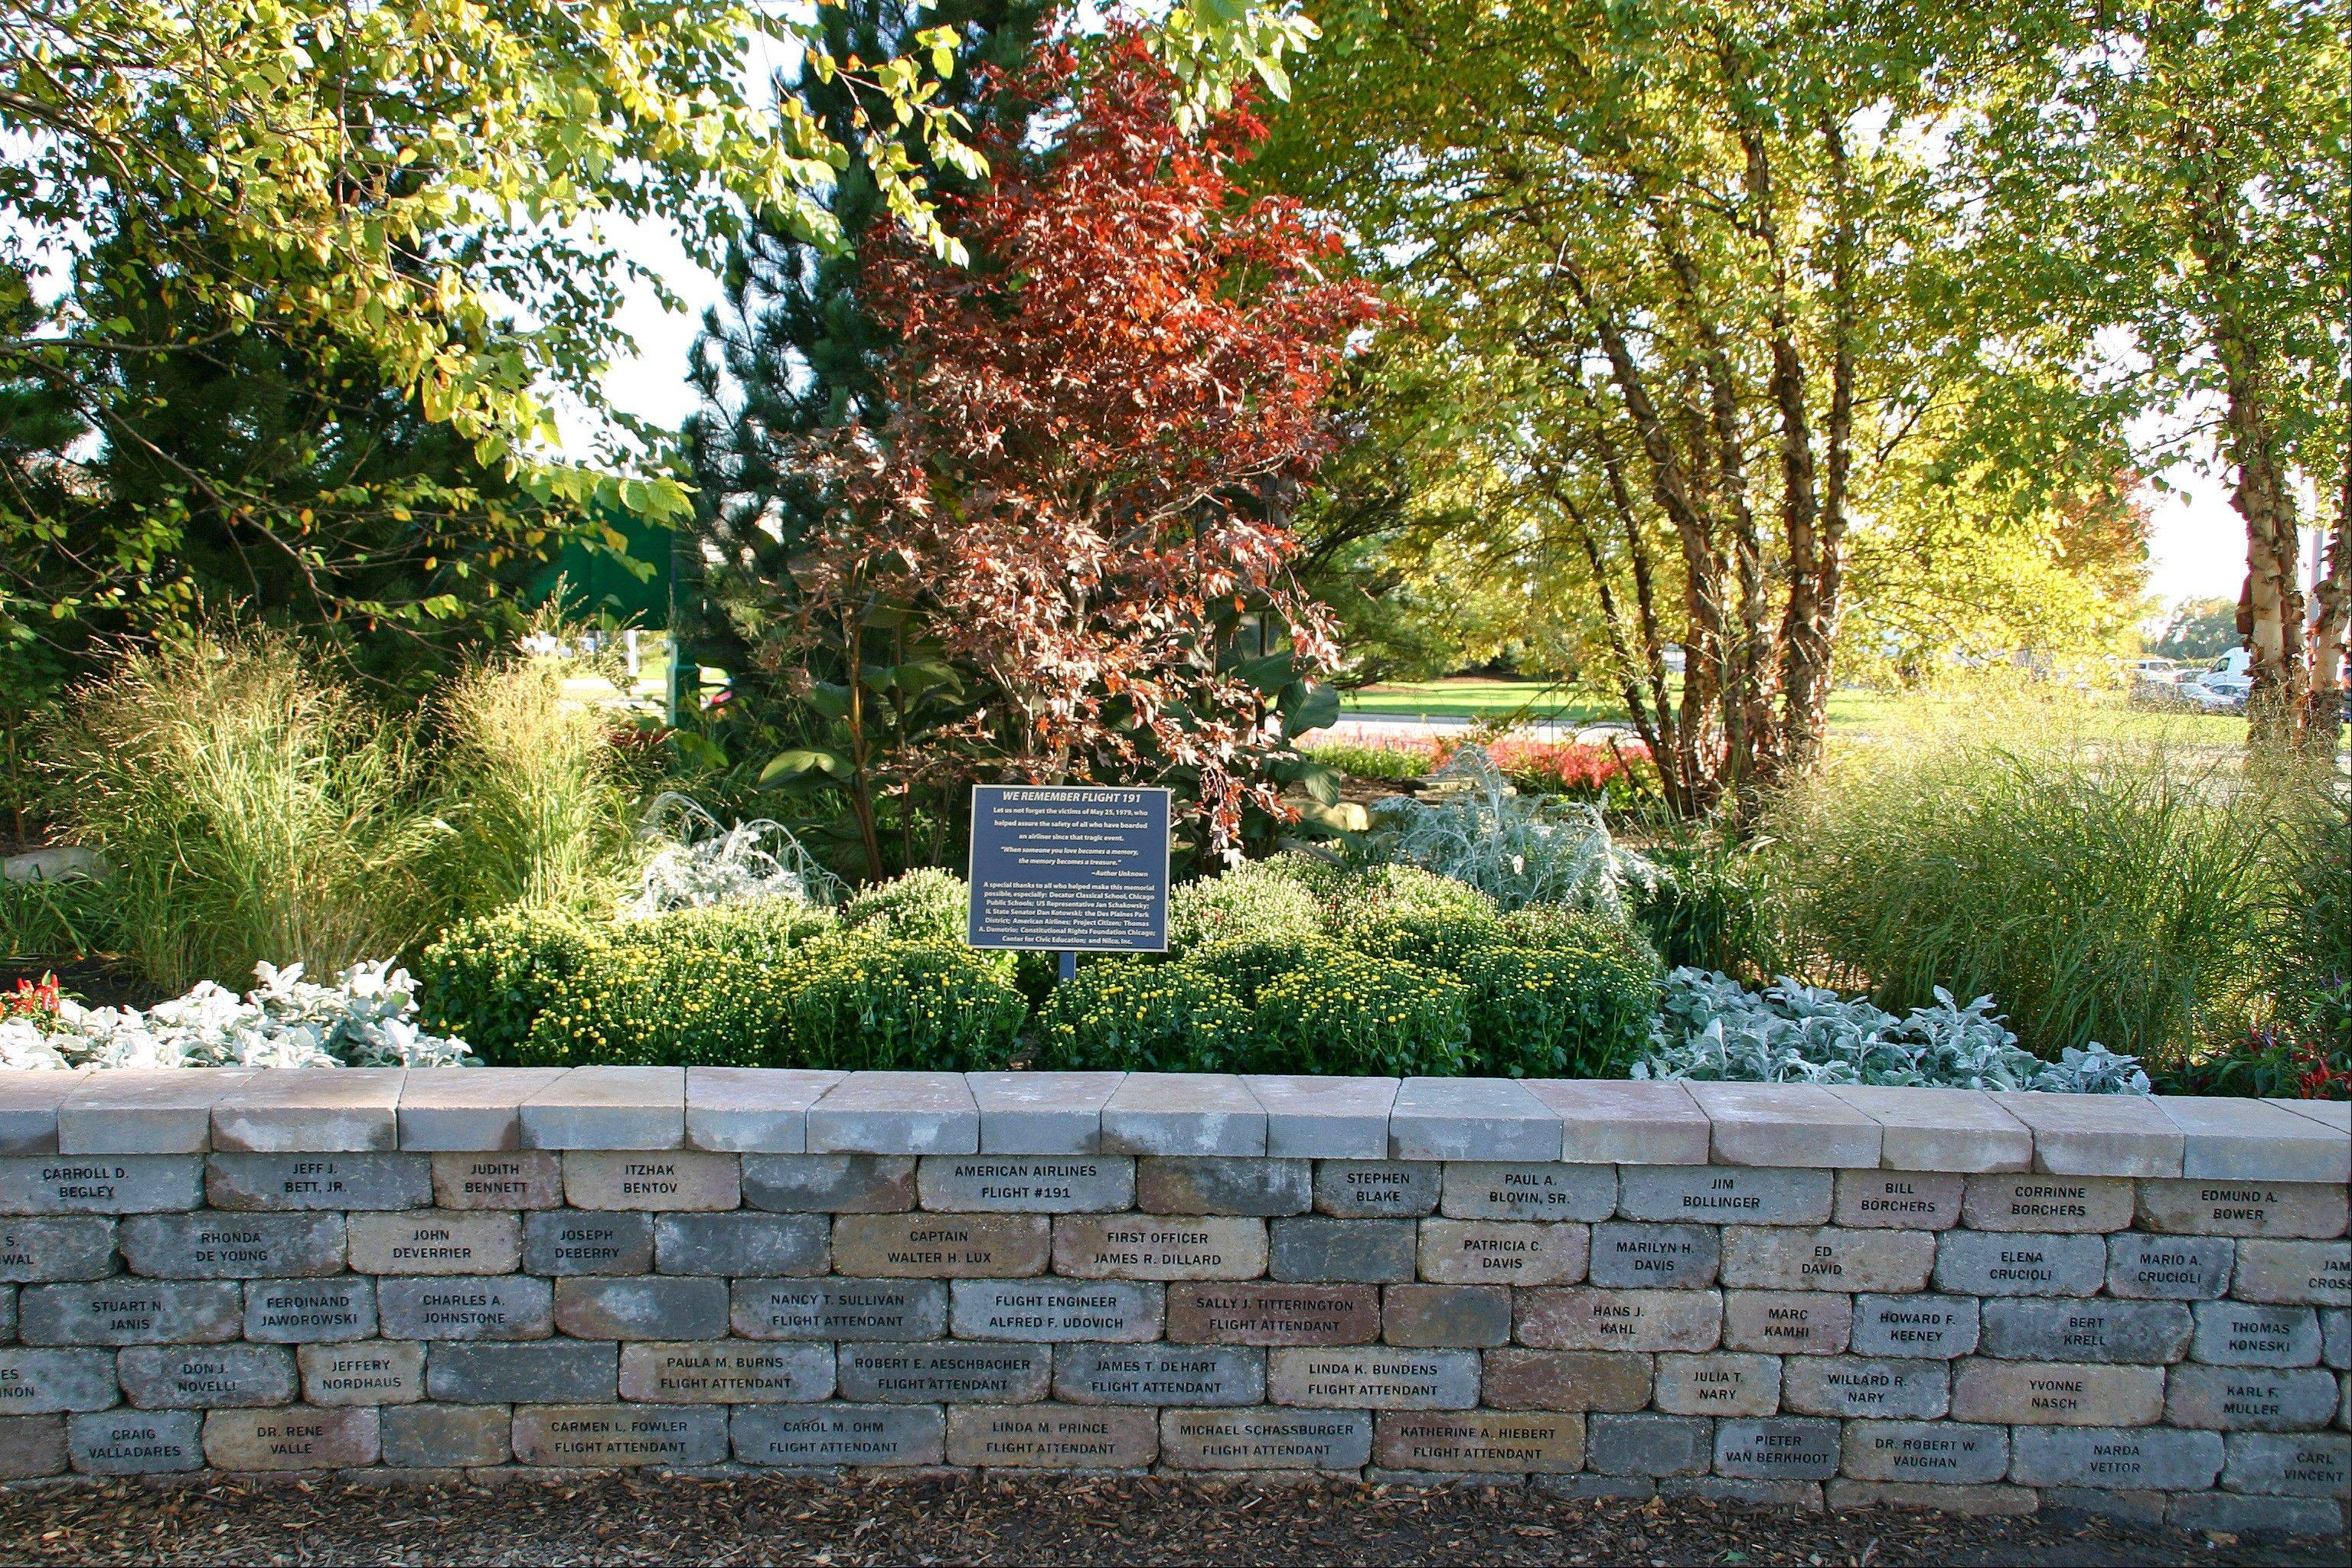 A dedication ceremony for the American Airlines Flight 191 Memorial will be held at 11 a.m. Saturday at Lake Park in Des Plaines. The memorial includes bricks for each of the 273 victims. A brass plaque and a red maple tree, chosen by students at Decatur Classical School in Chicago, stand in a flower bed behind the wall.